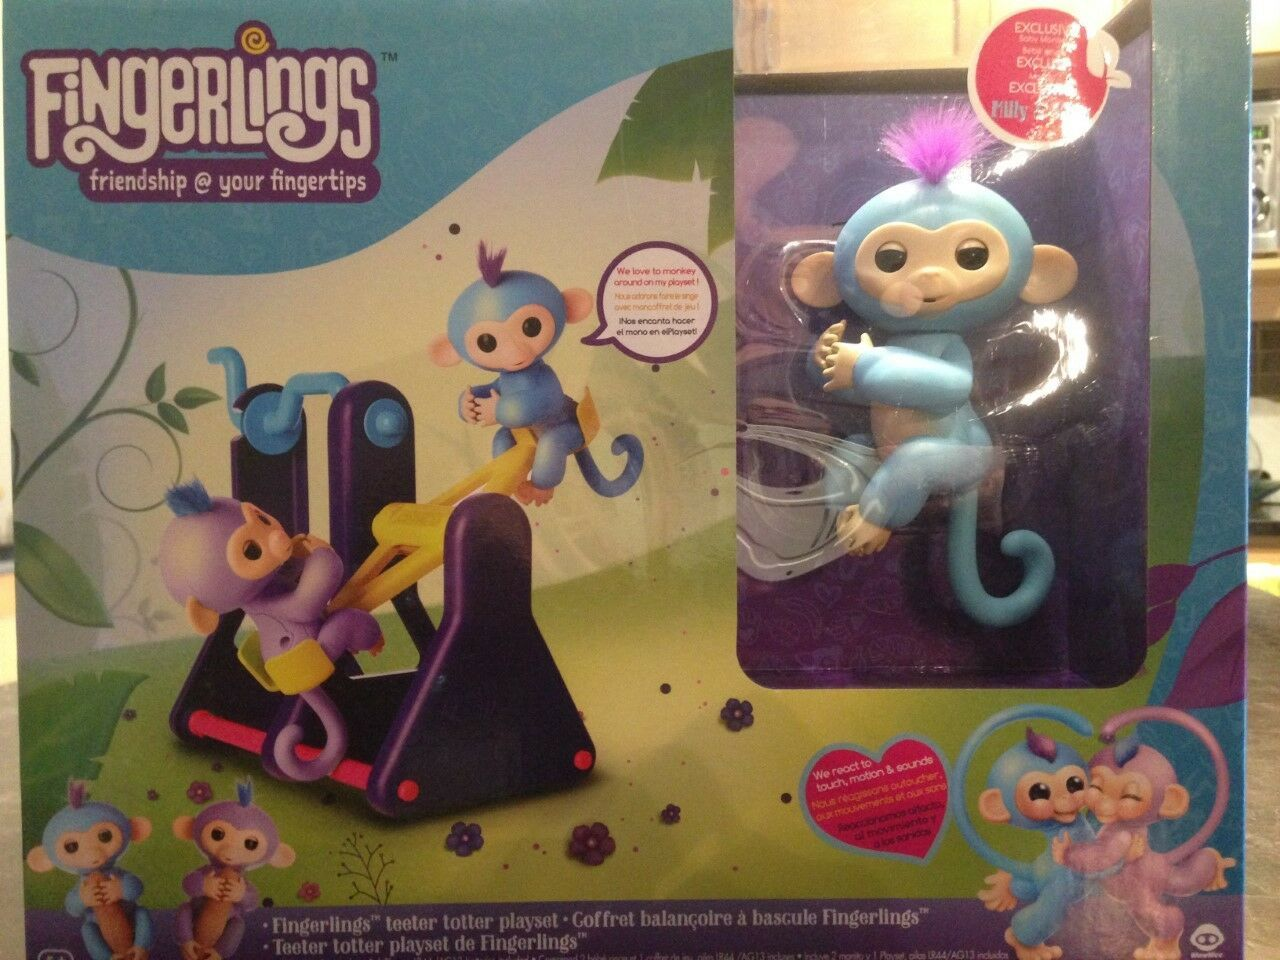 Fingerlings Playset See-Saw with 2 Fingerlings Baby Monkey Toys Willy & Milly